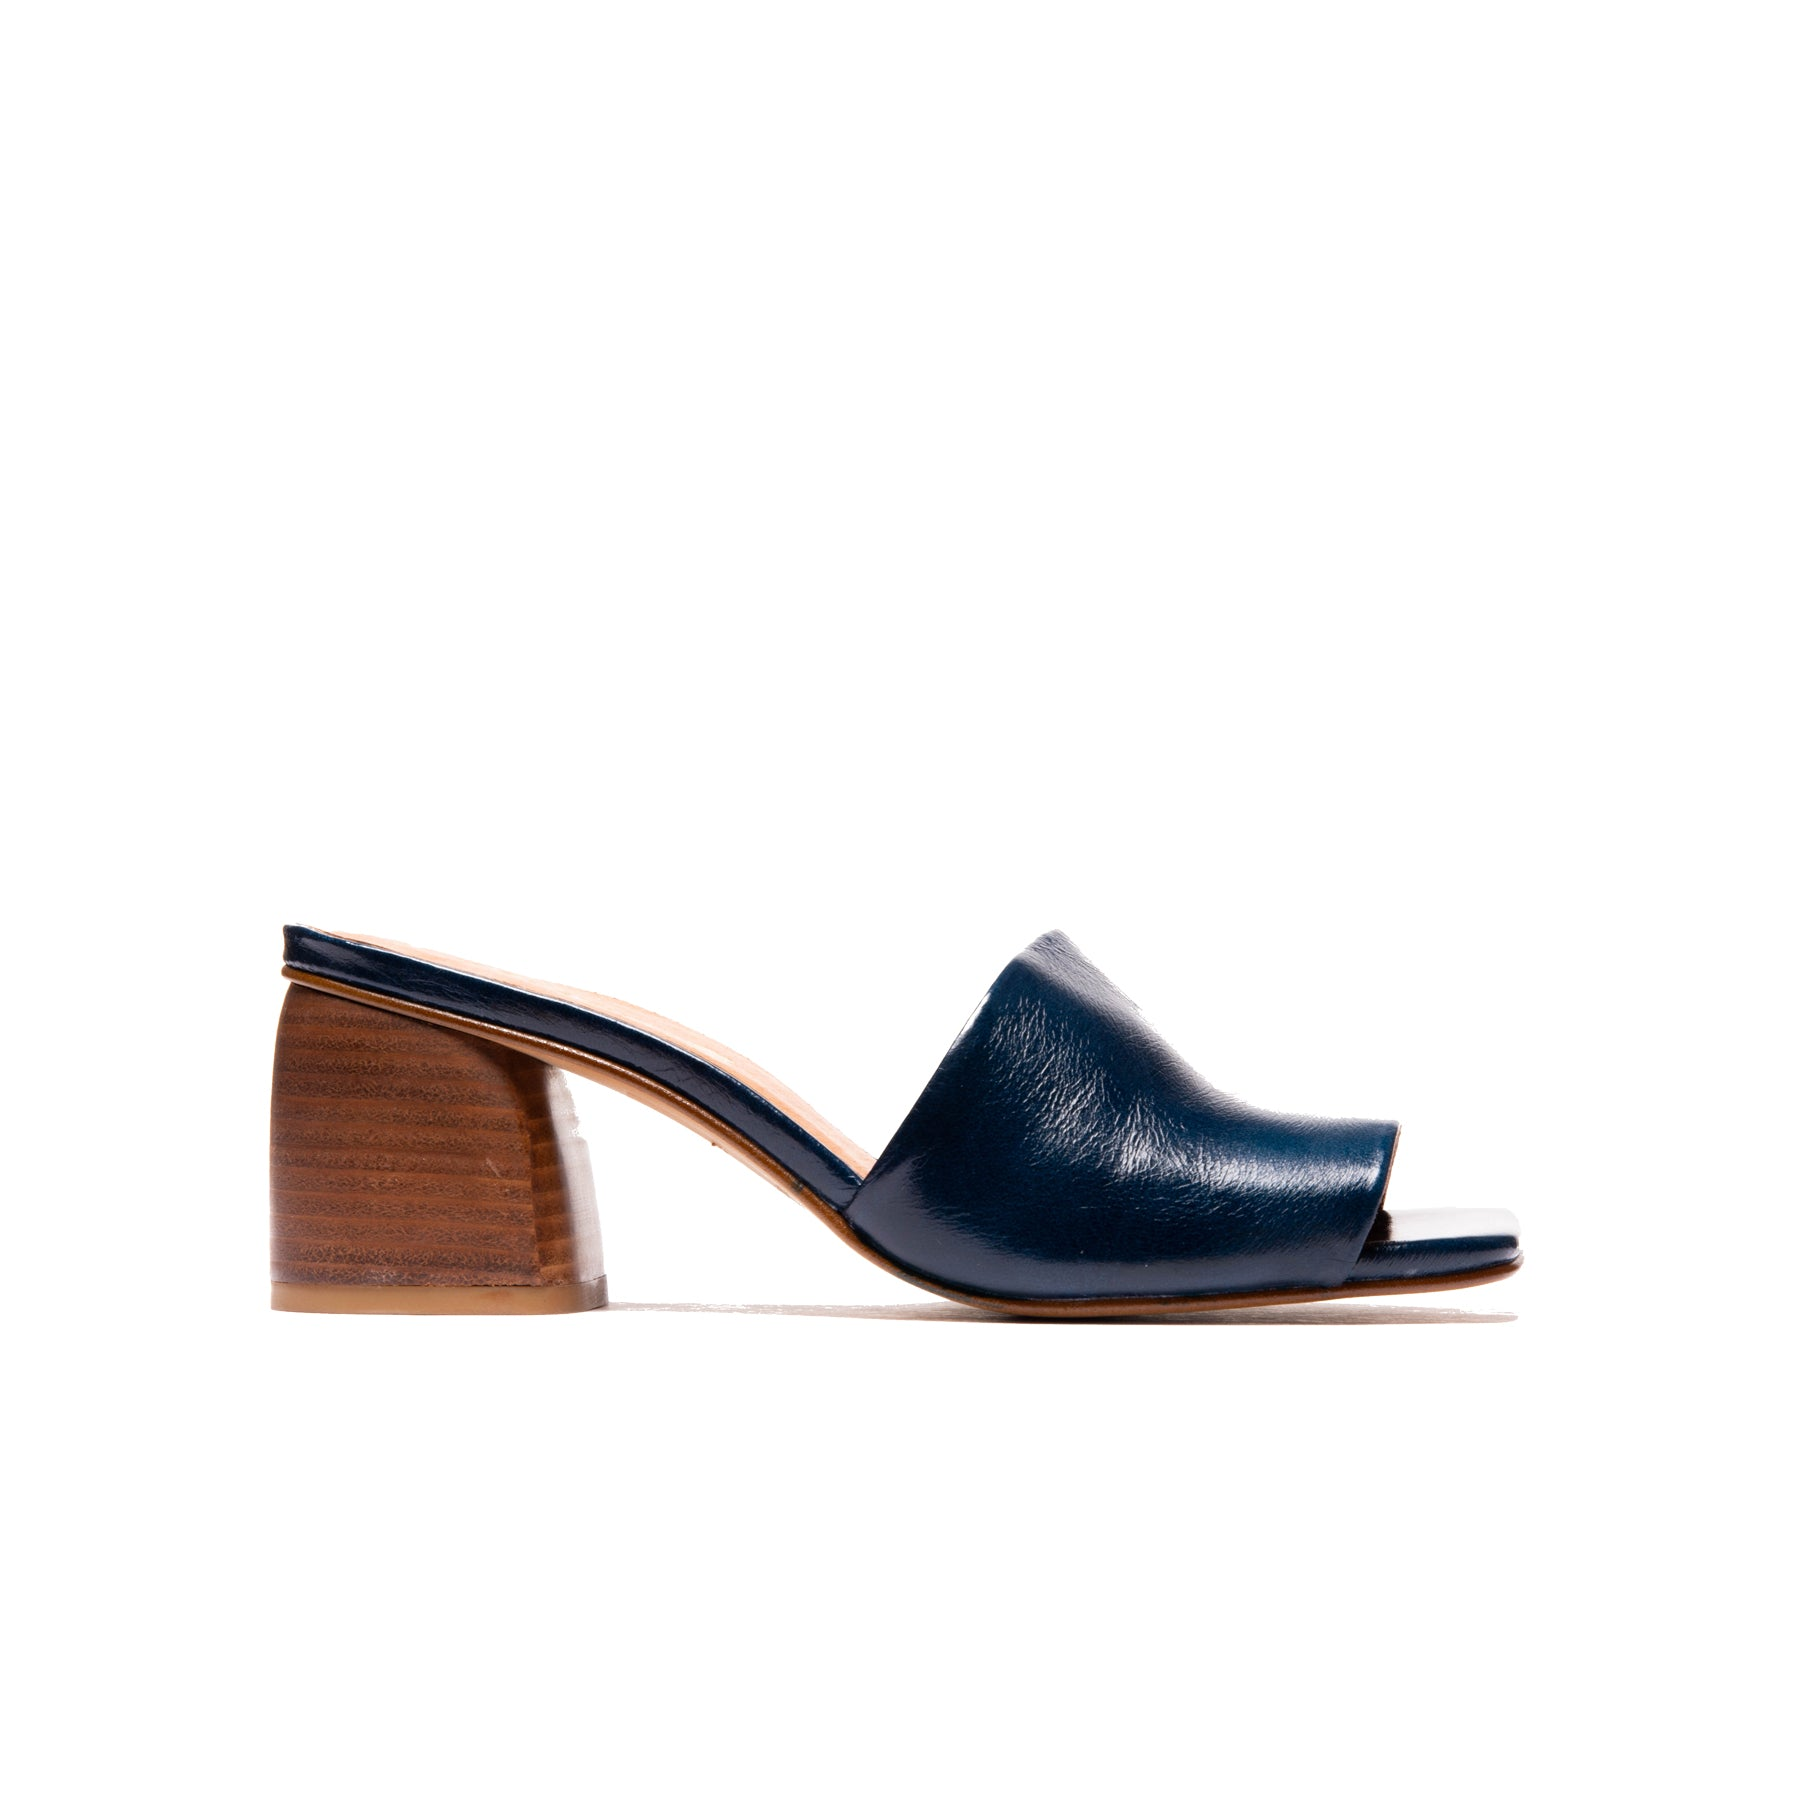 Shanaya Navy Leather